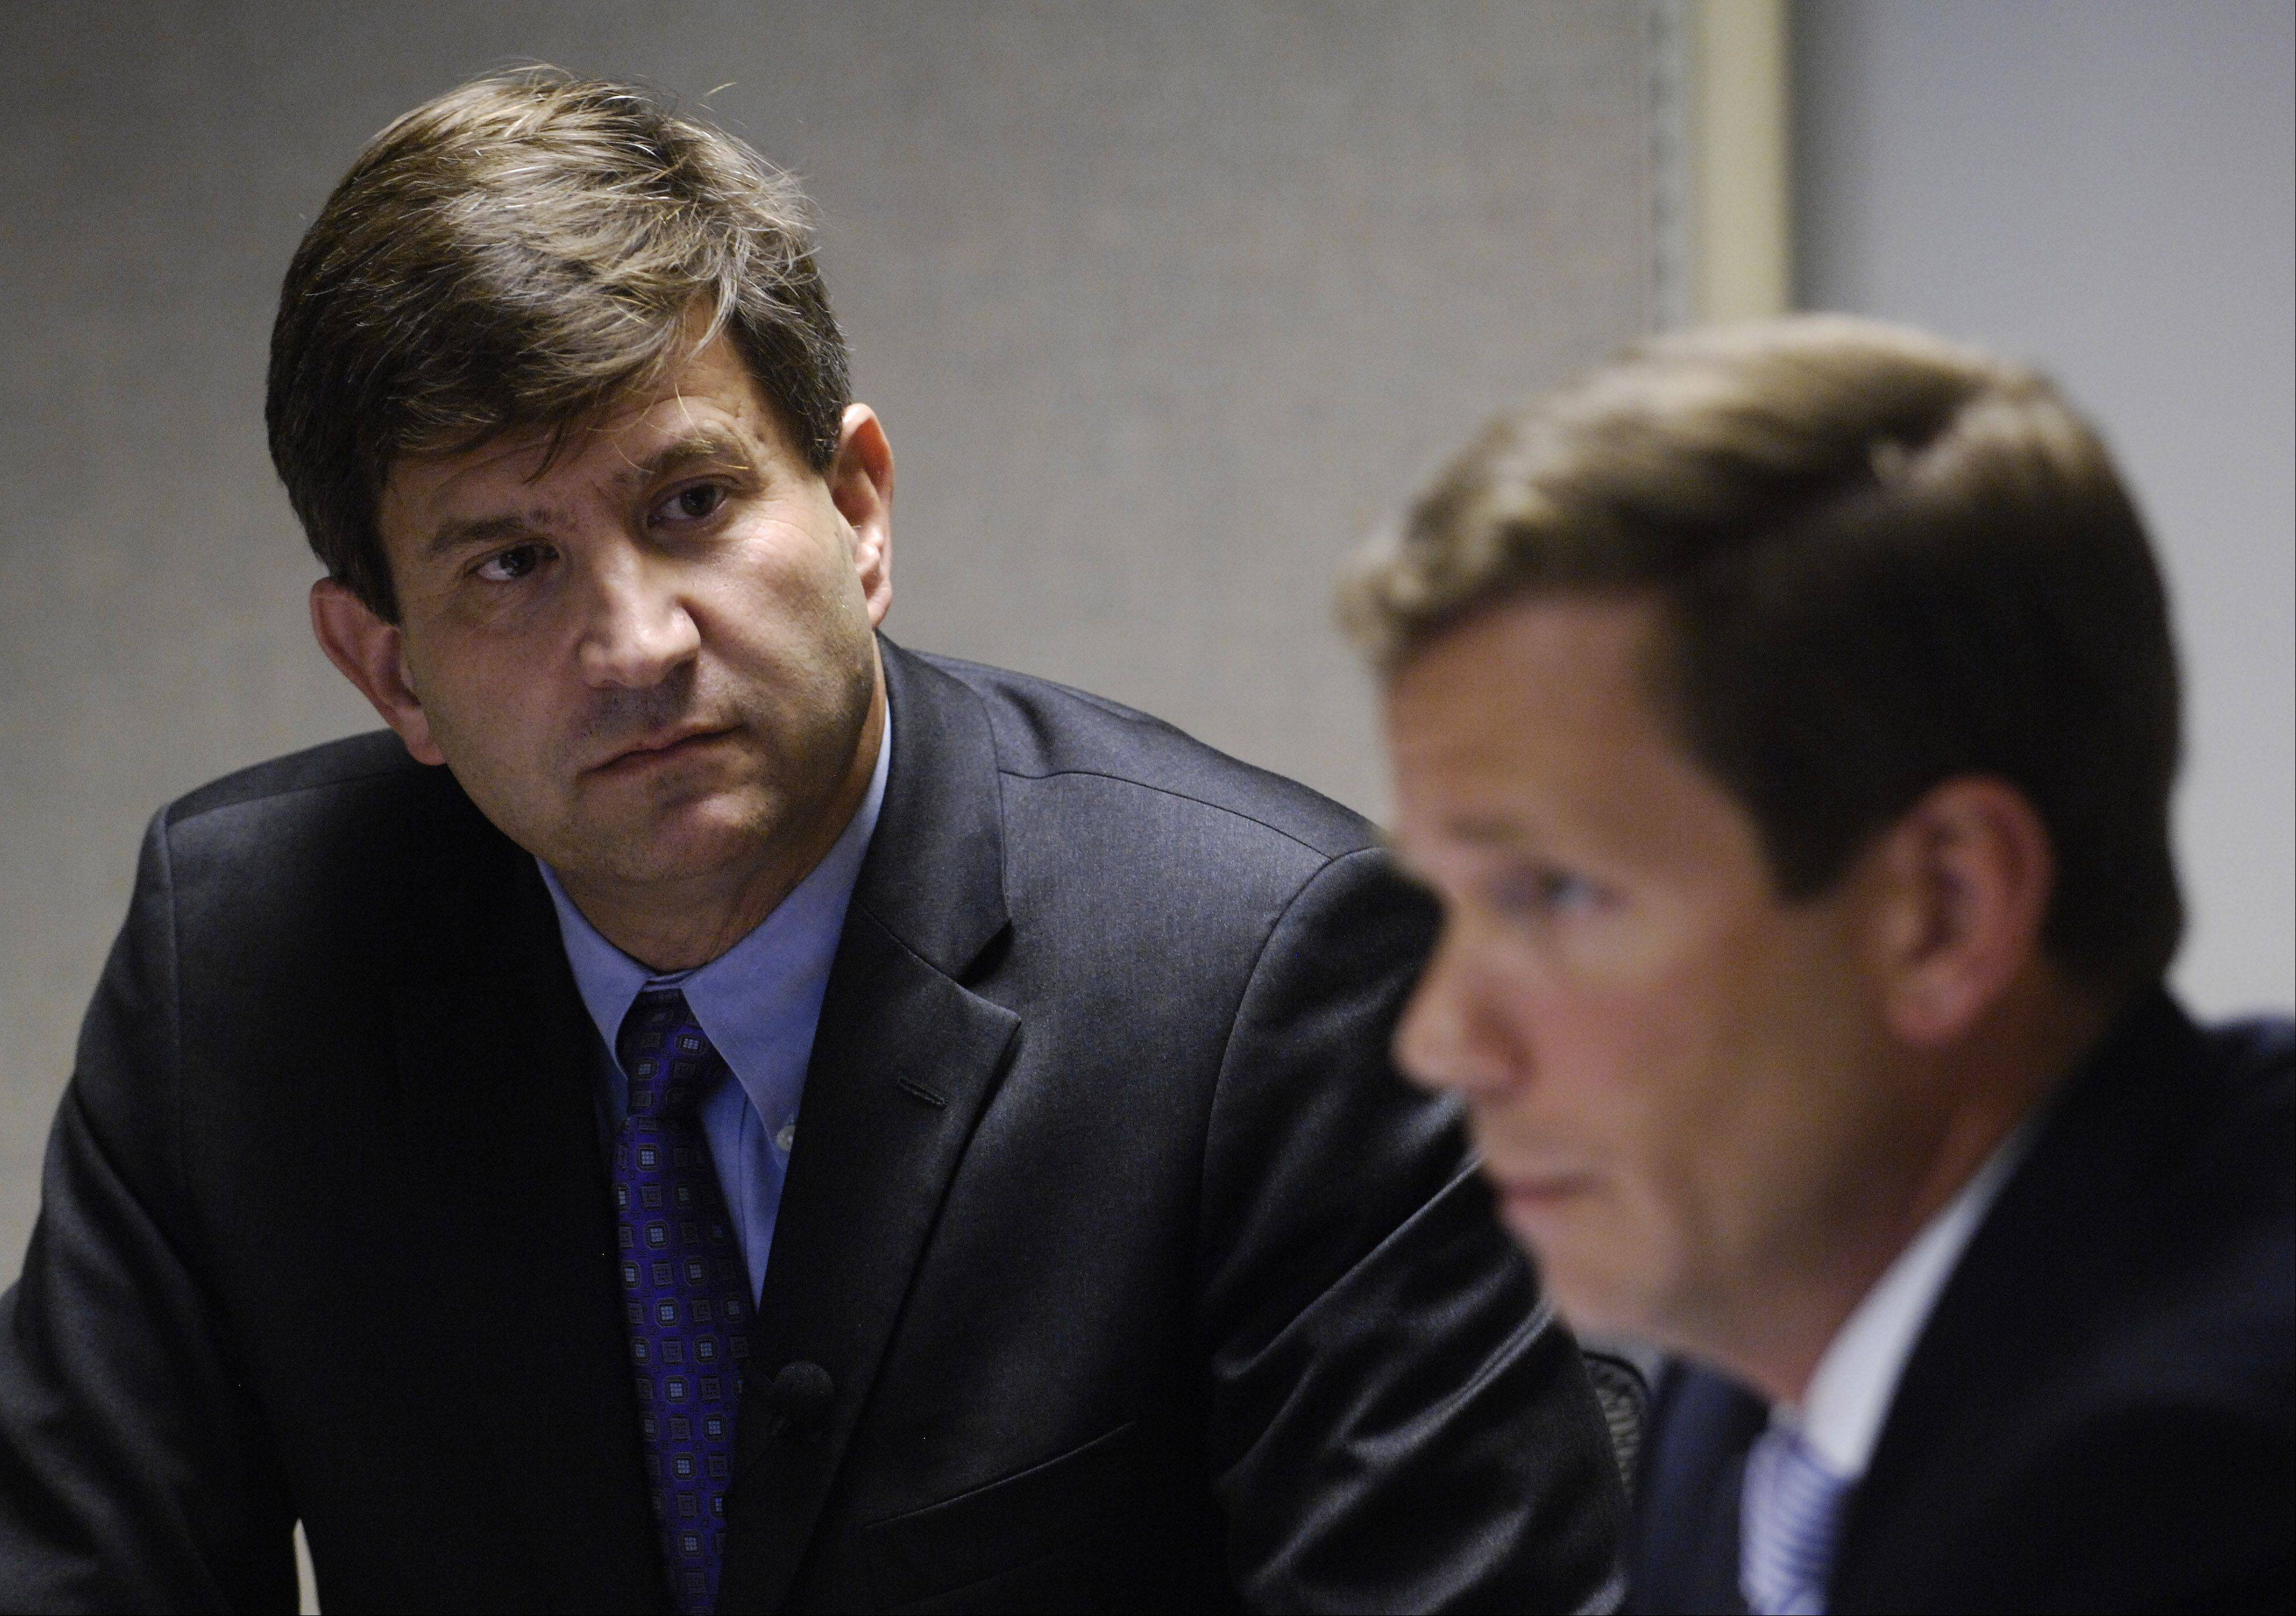 Dold, Schneider feud over tax returns, business experience